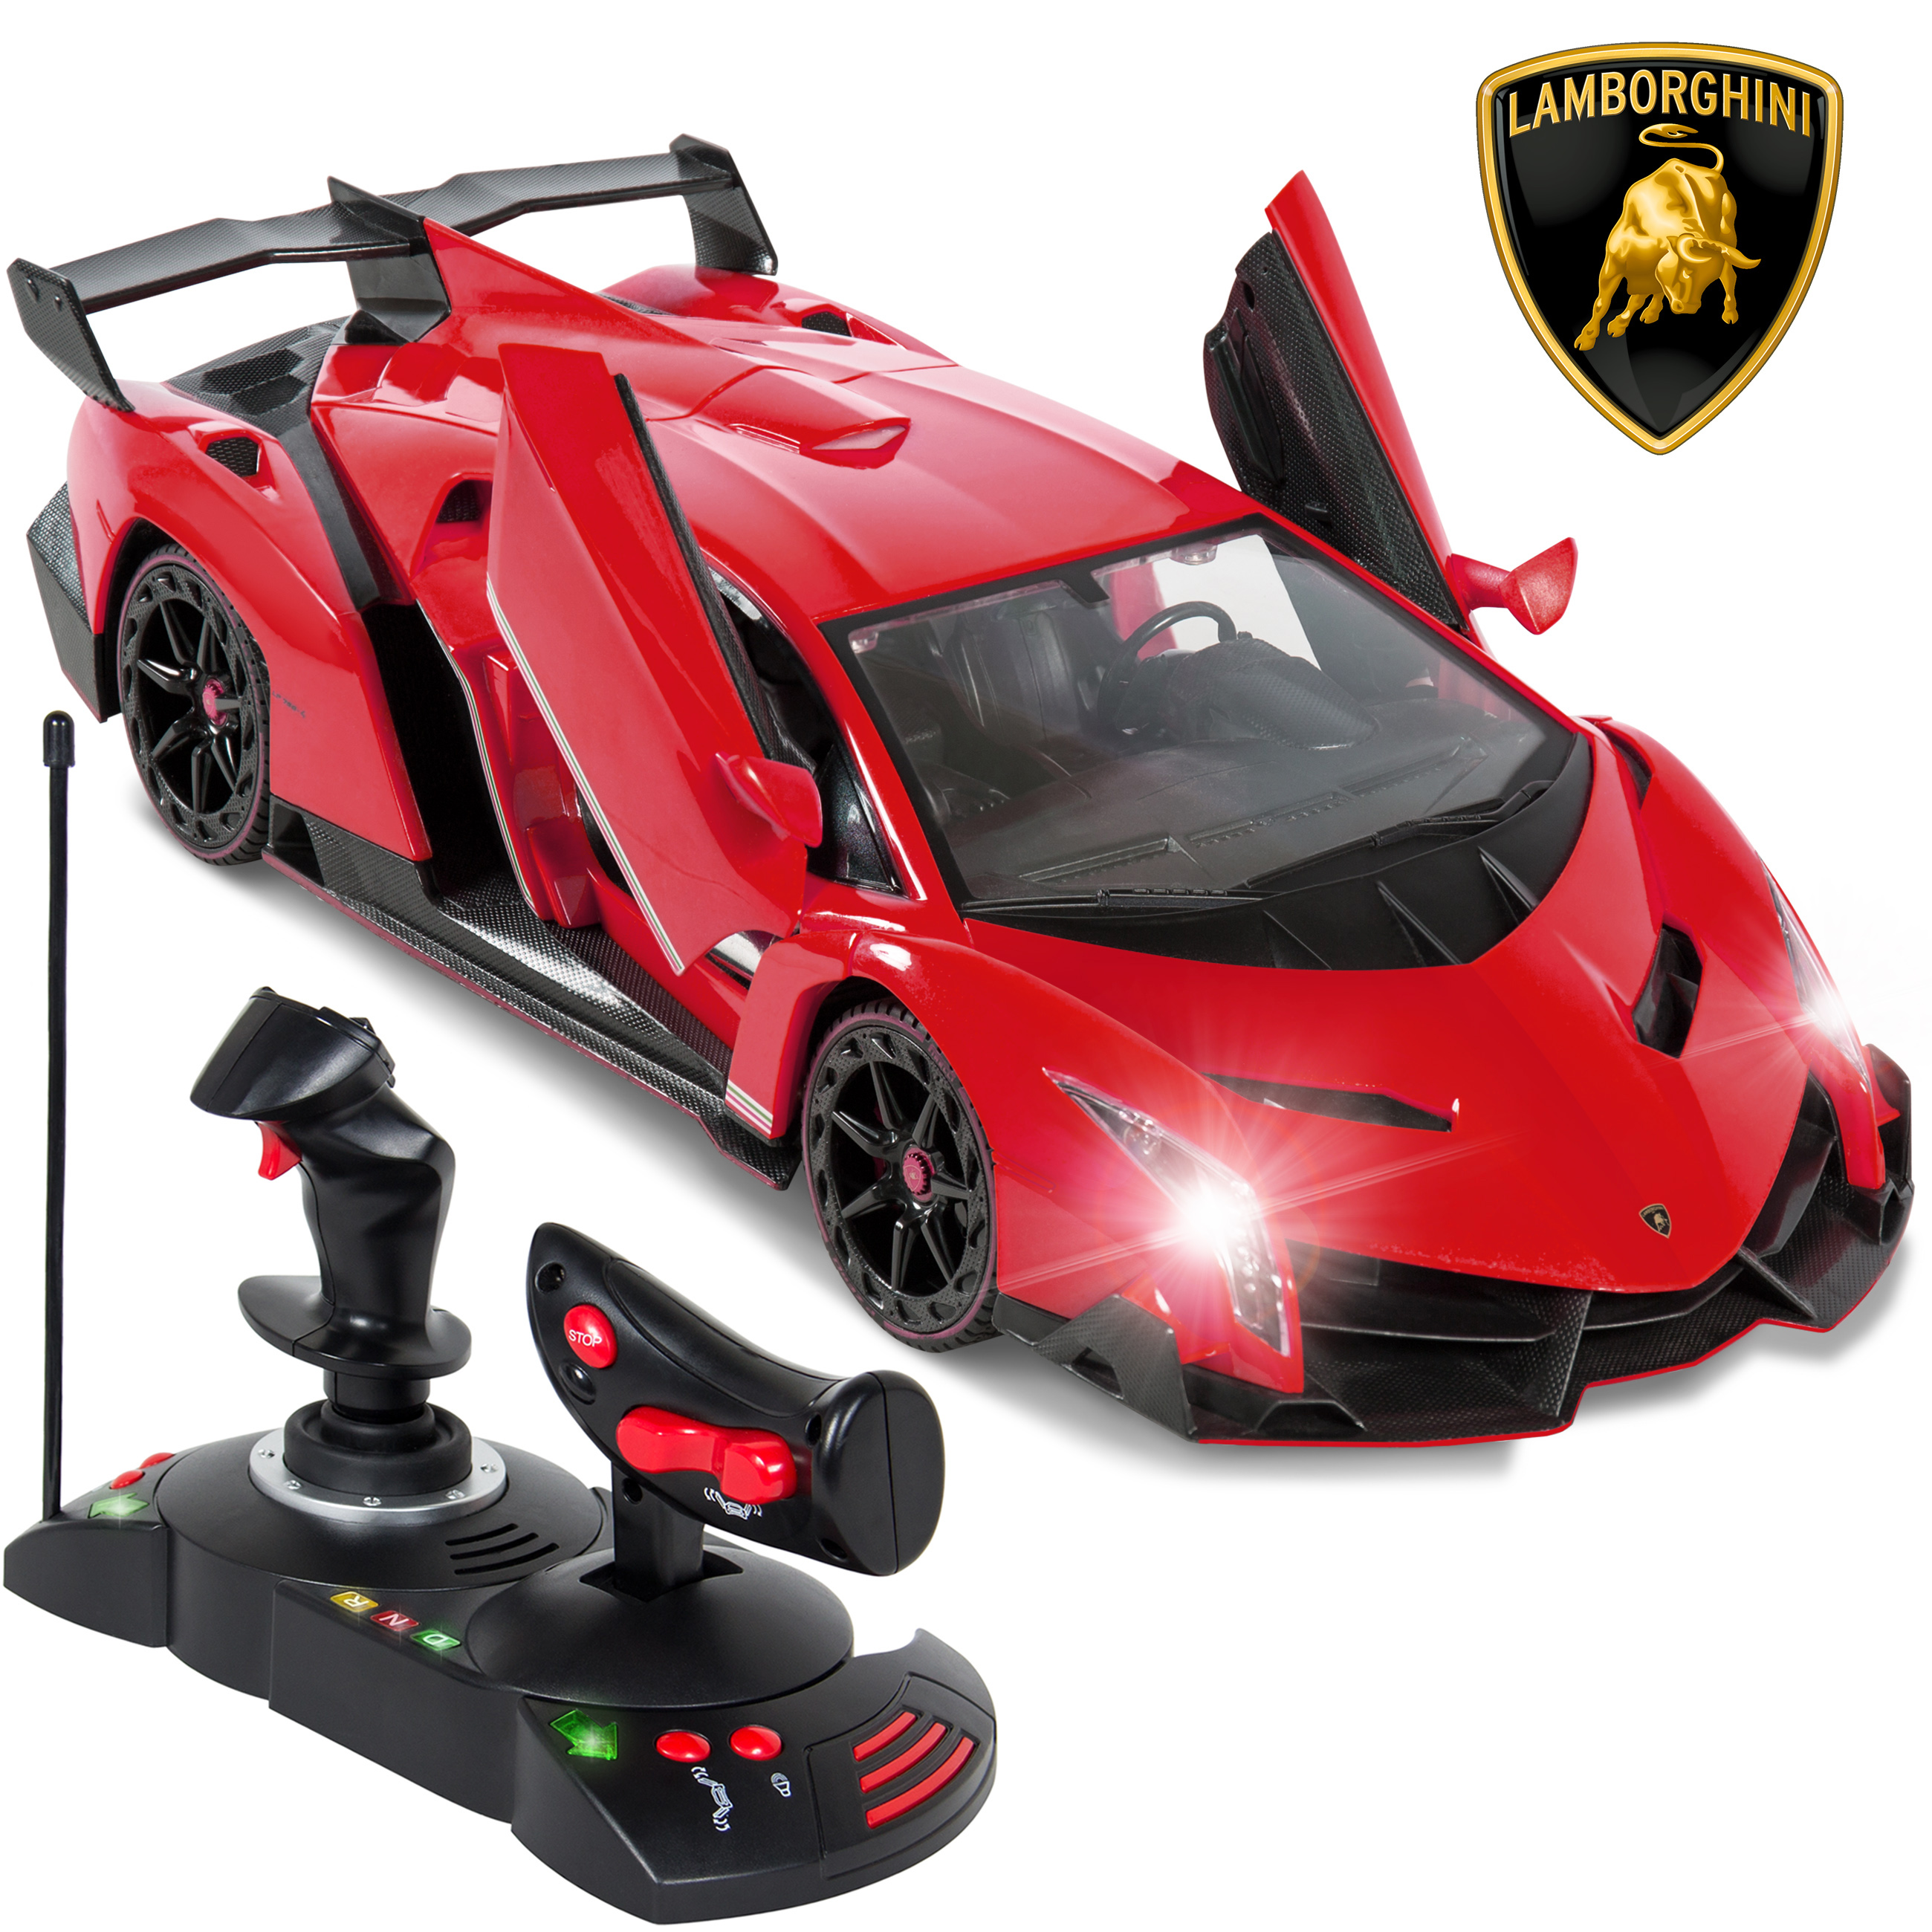 rc remote control cars with Cheap Rc Cars For Sale on 47d Engine 132 Trumpeter P 20308 also Cheap Rc Cars For Sale also Elegoo Uno Project Upgraded Smart Robot Car Kit V2 0 furthermore Traxxas  s Up The X Maxx For 8s Lipo Power additionally Product large.